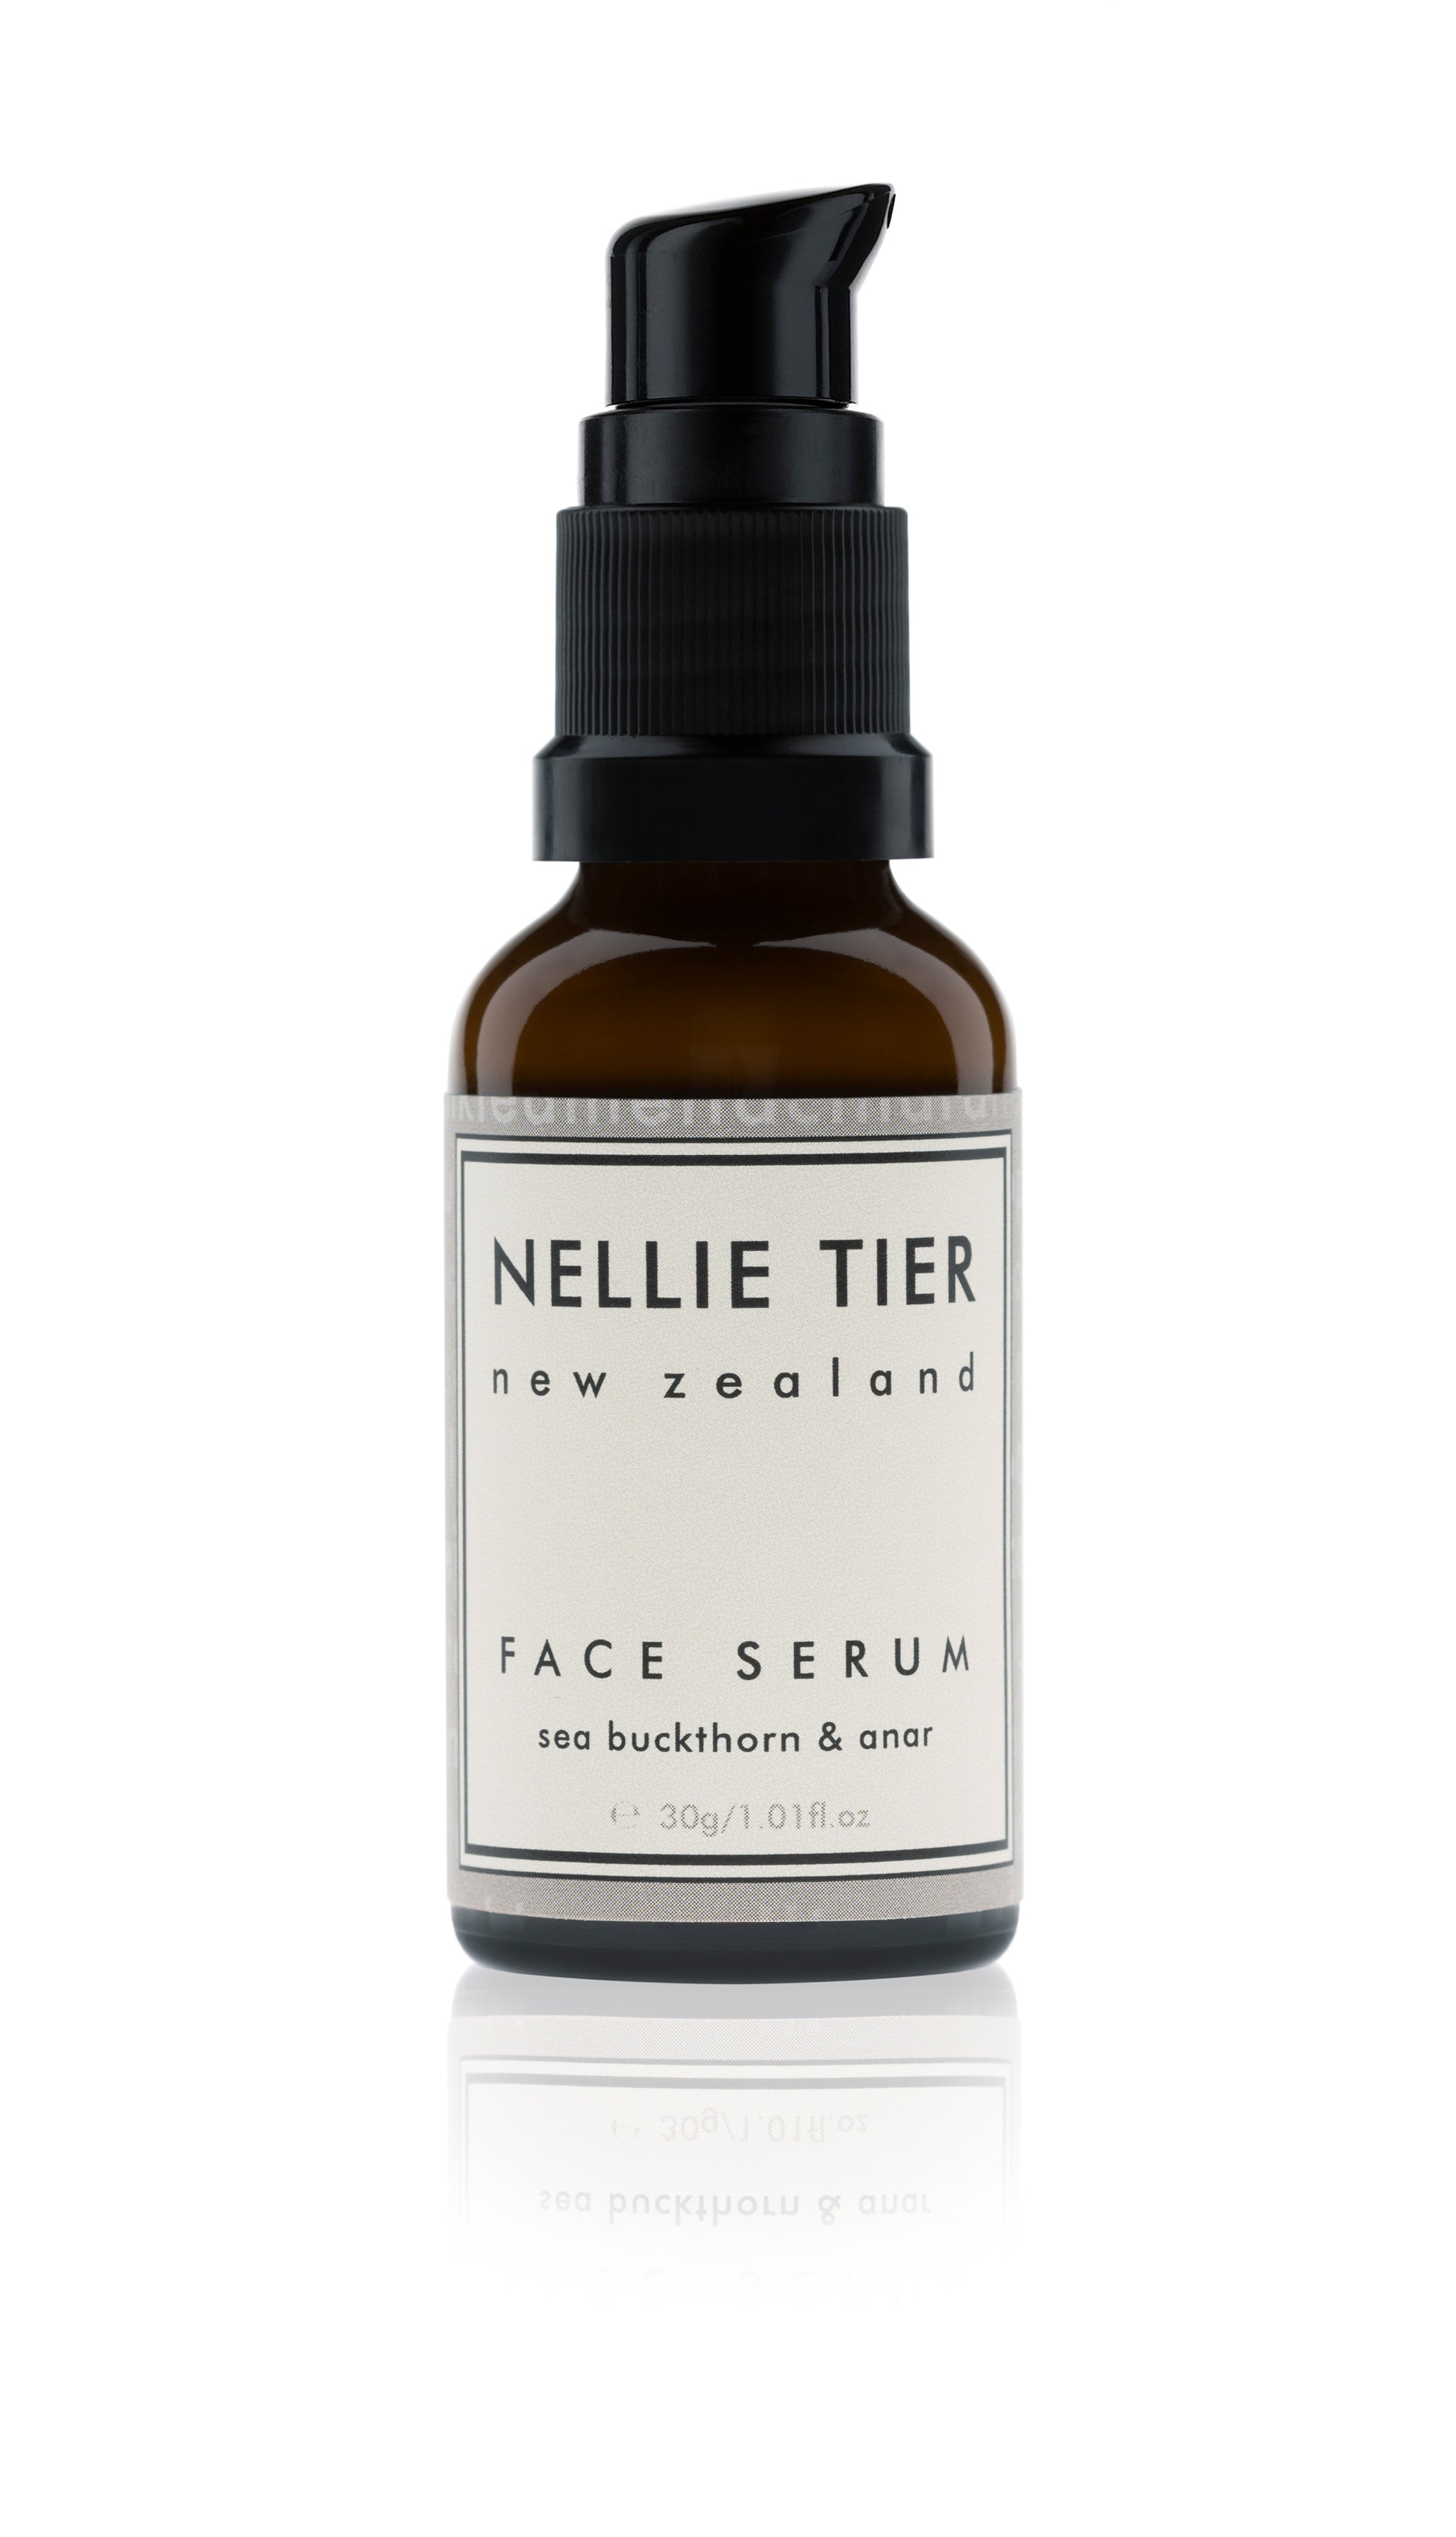 Face Serum - Seabuckthorn and Anar 30ml